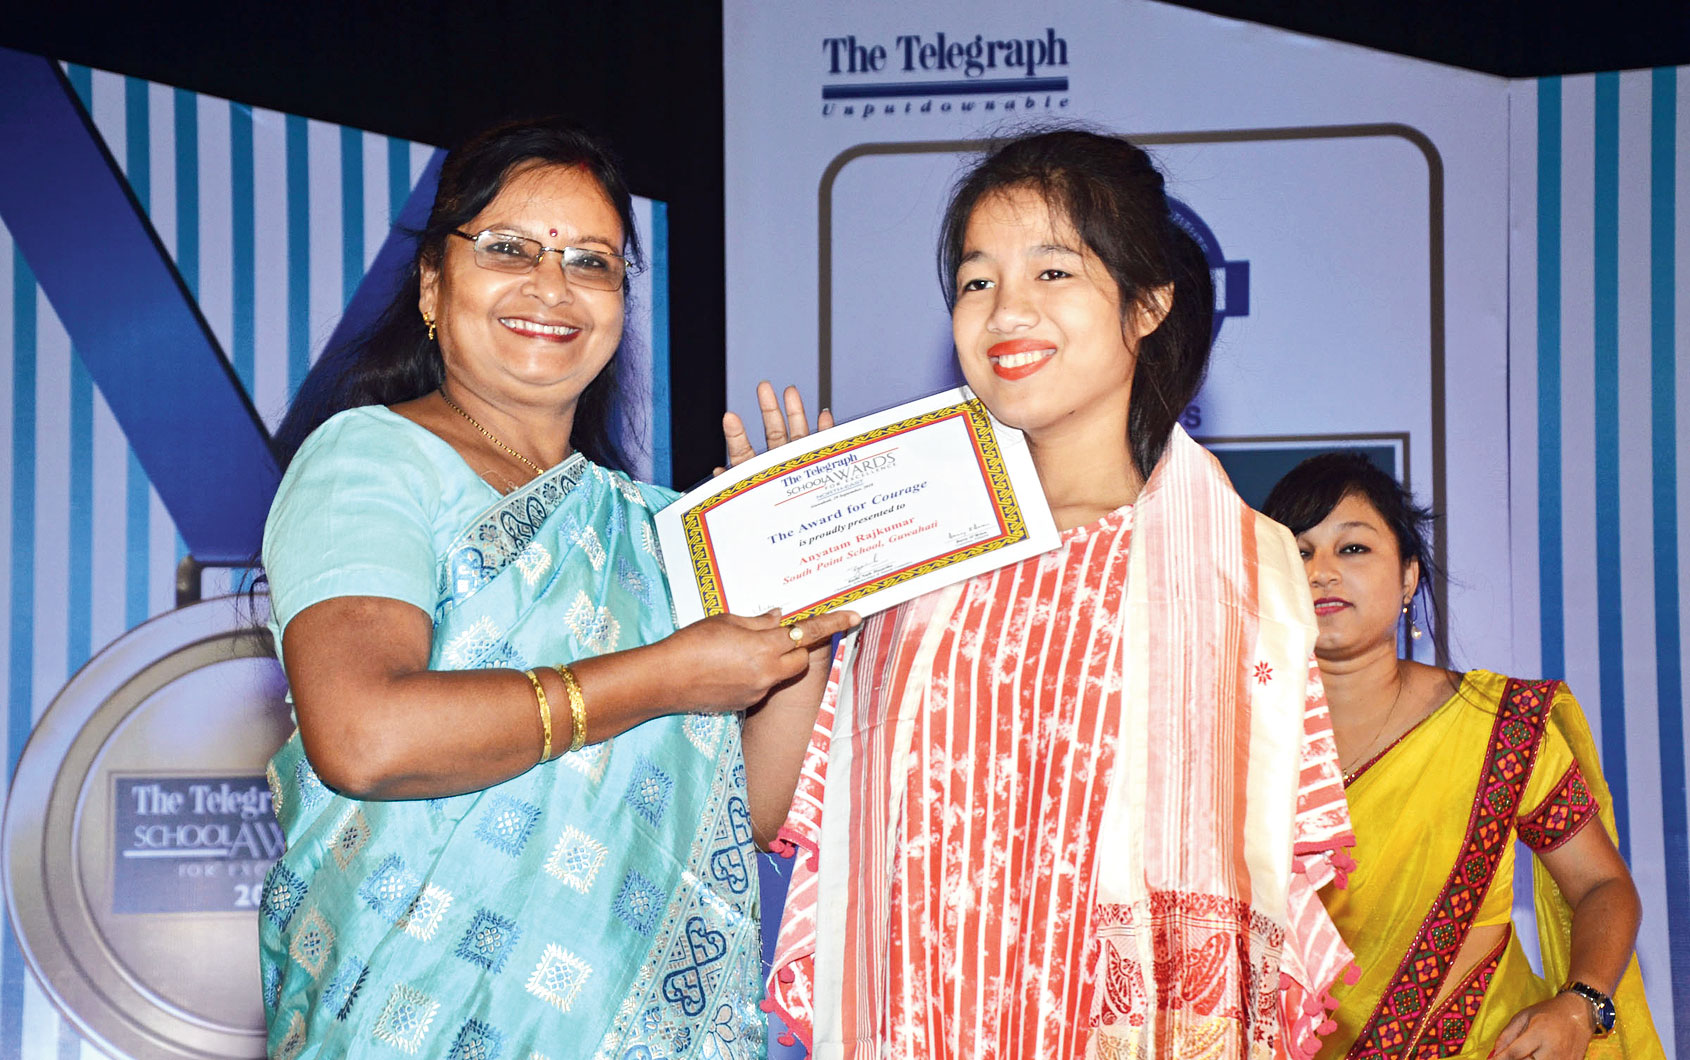 Anyatam Rajkumar's mother Niru Dutta Rajkumari (left) receives the award on his behalf.